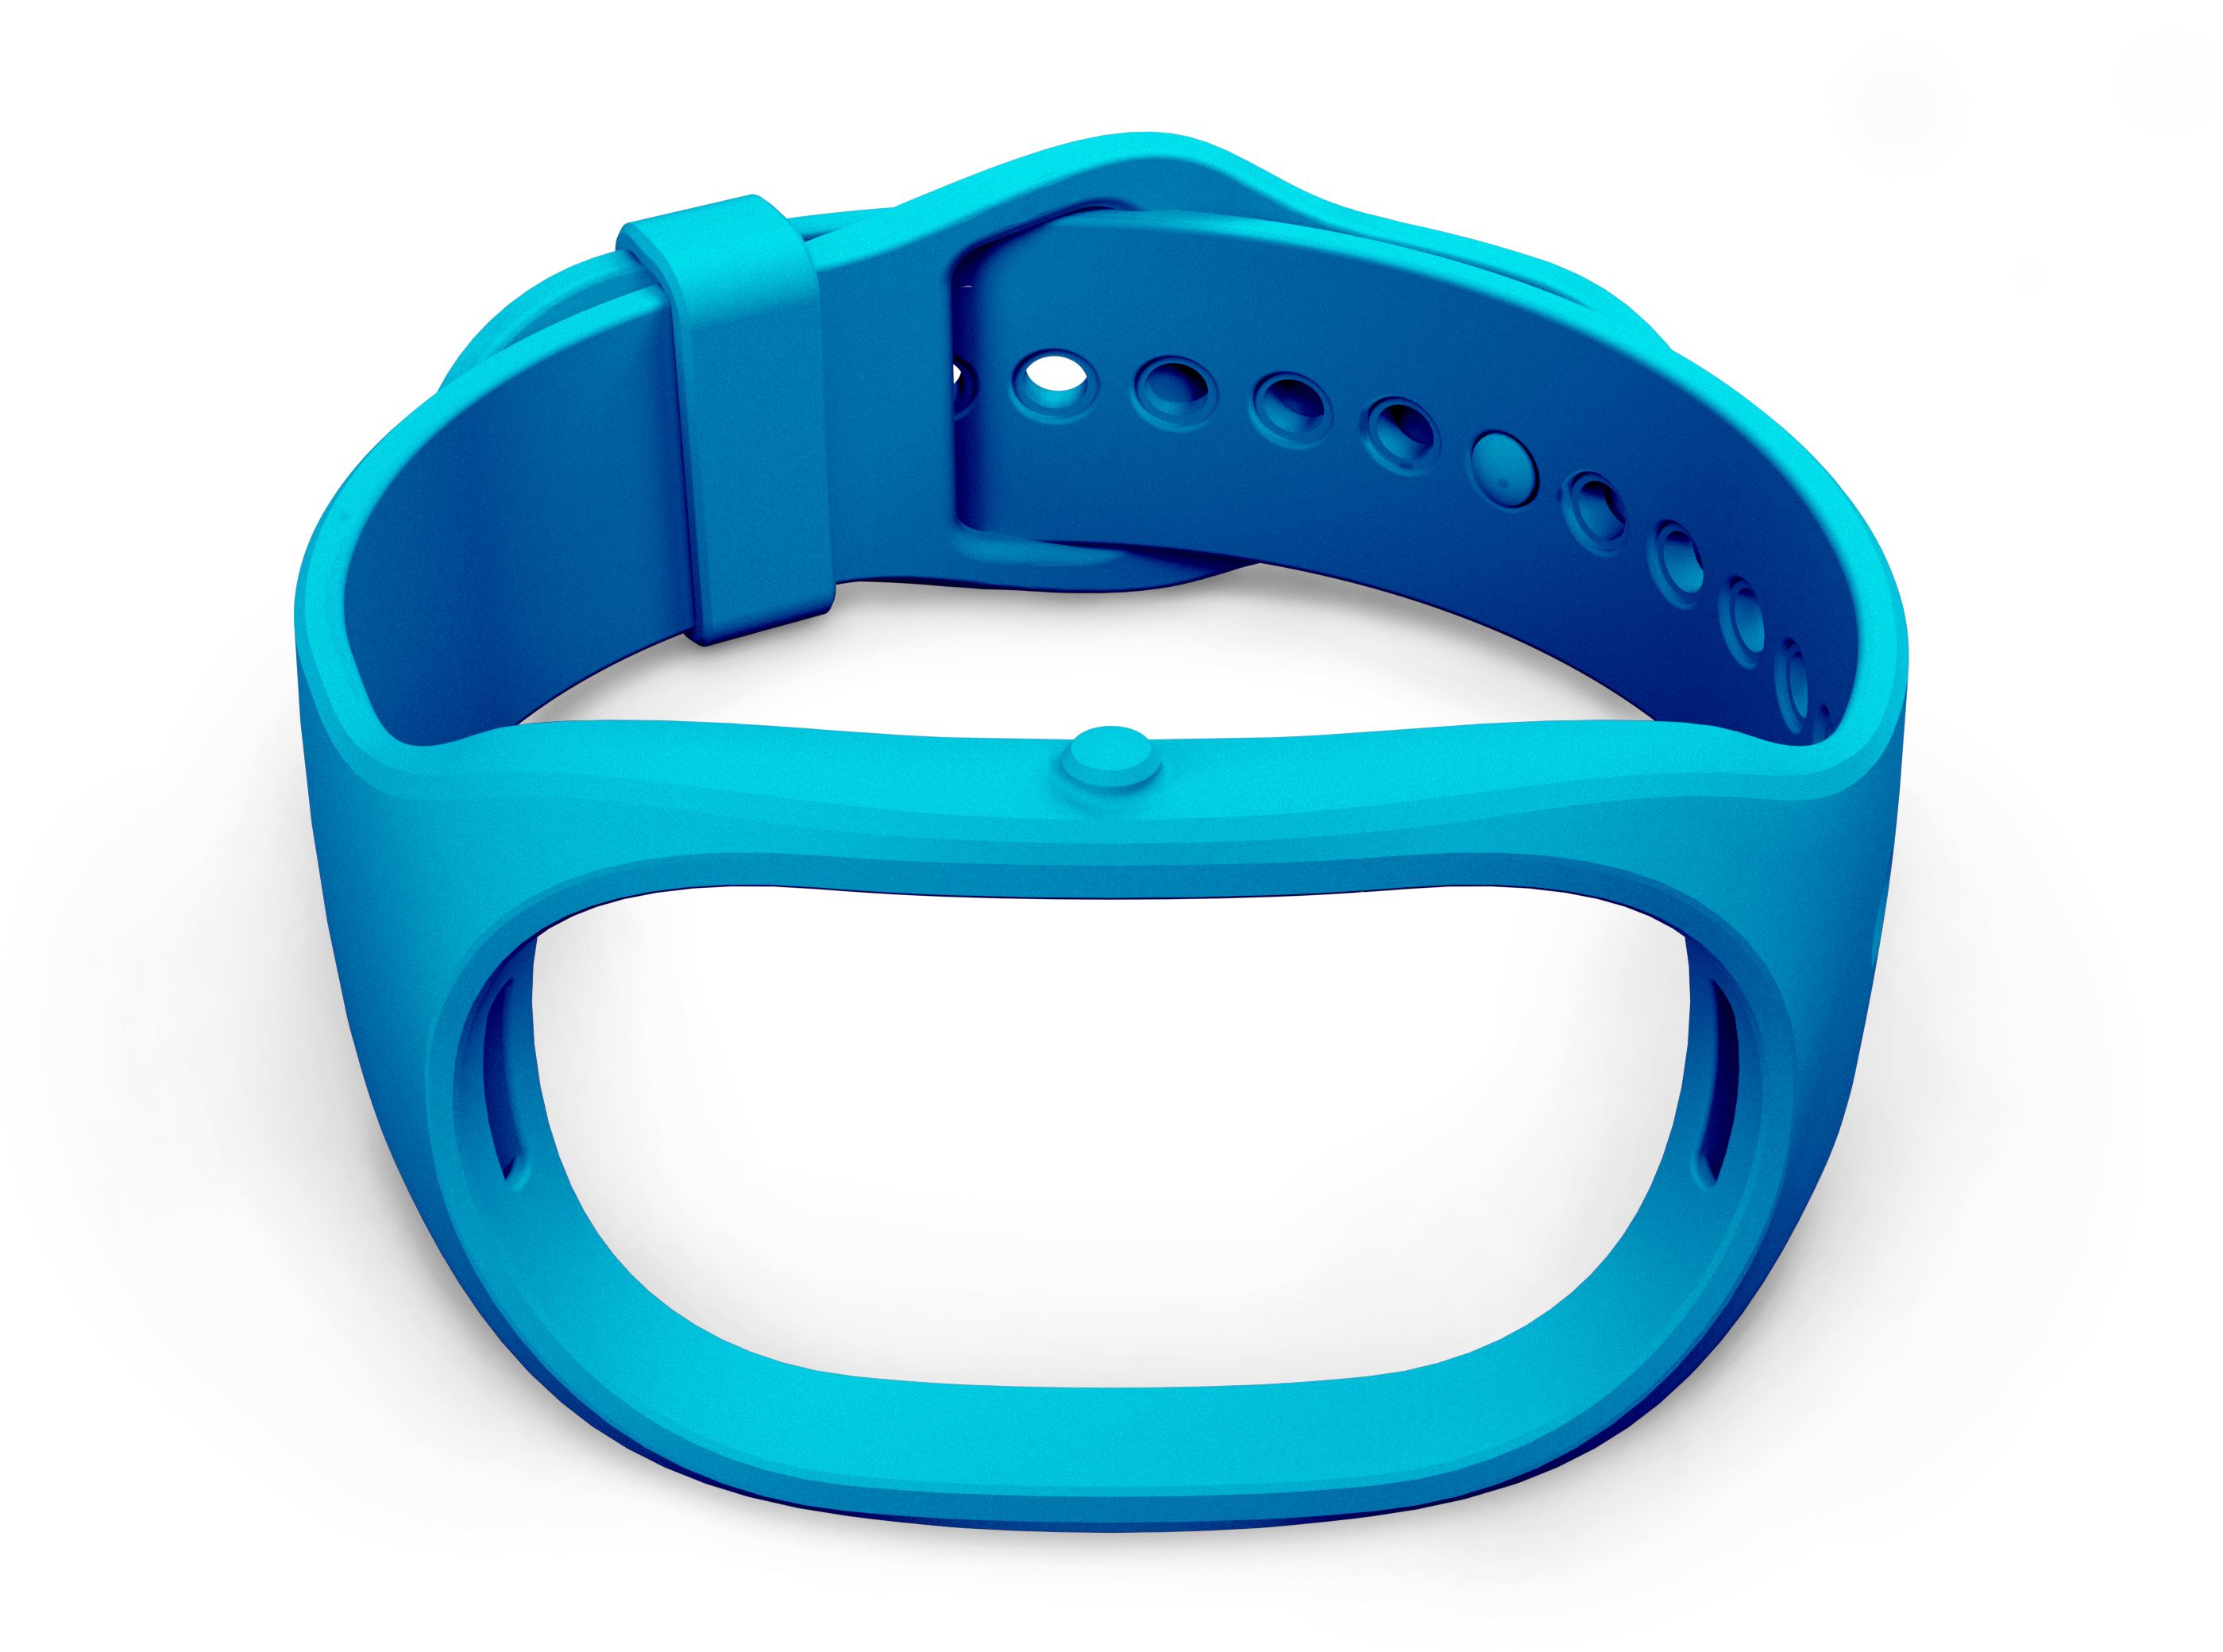 Healbe gobe2 fitness band review: a unique modern gadget for monitoring physical health